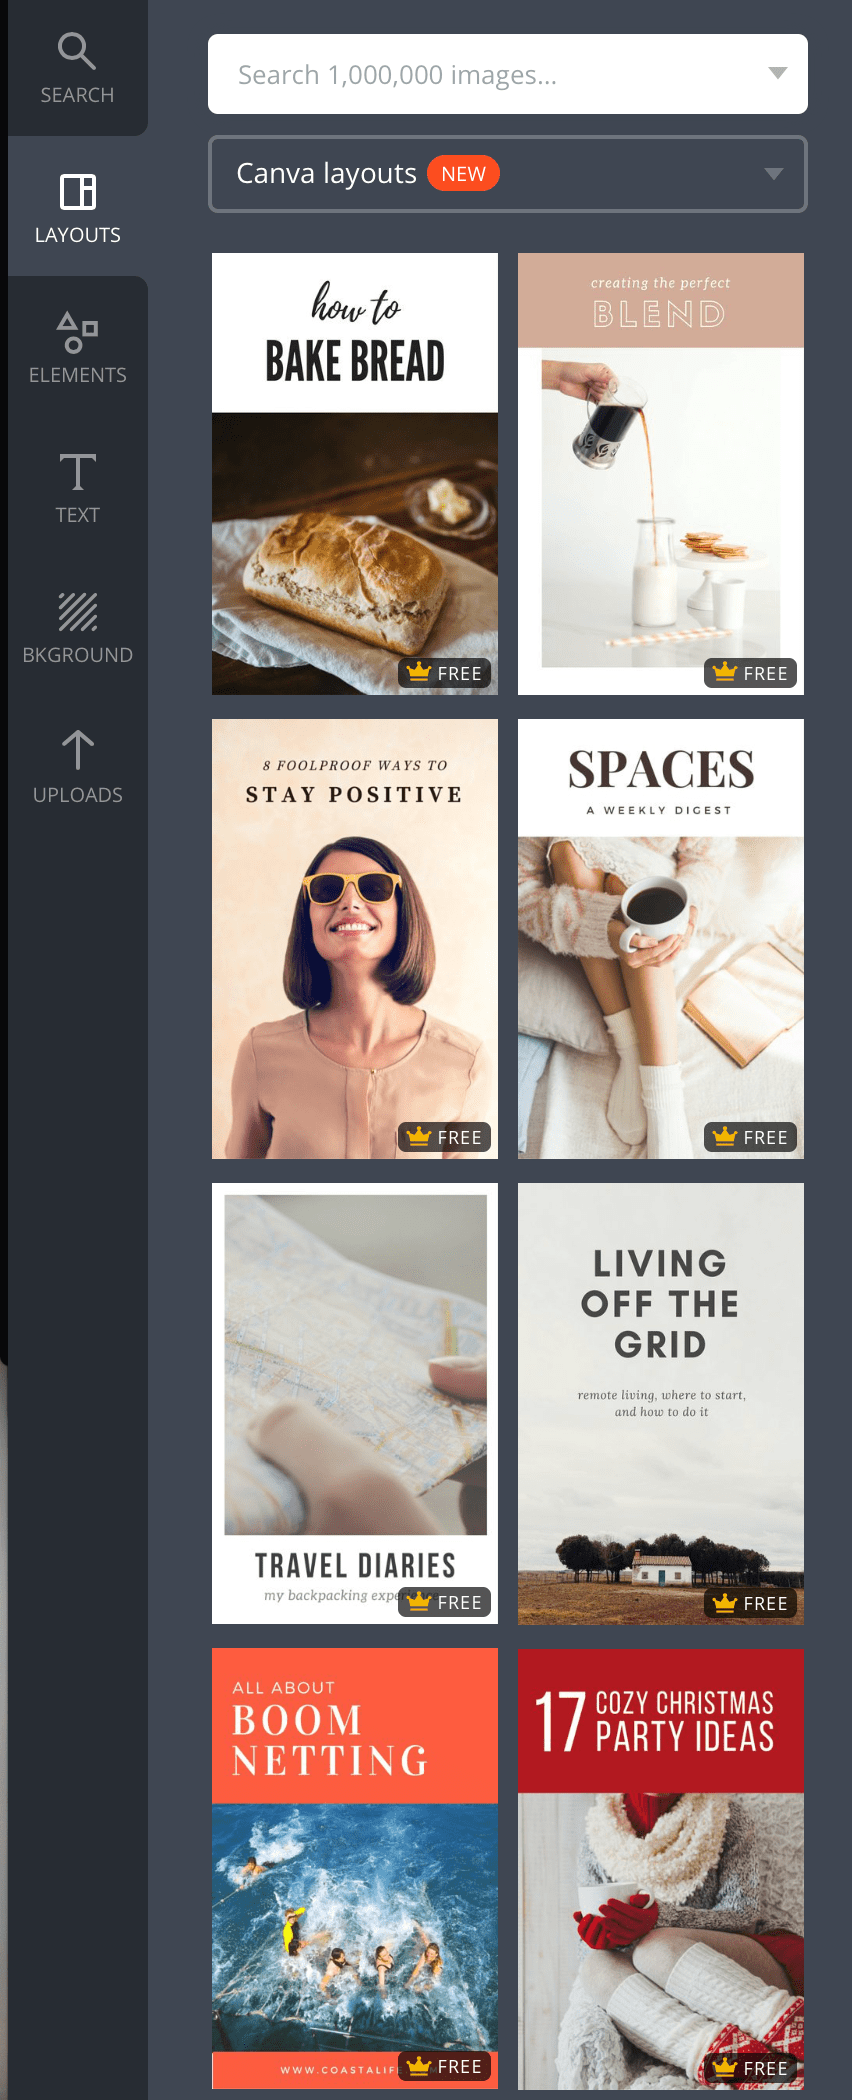 templates and layouts on canva